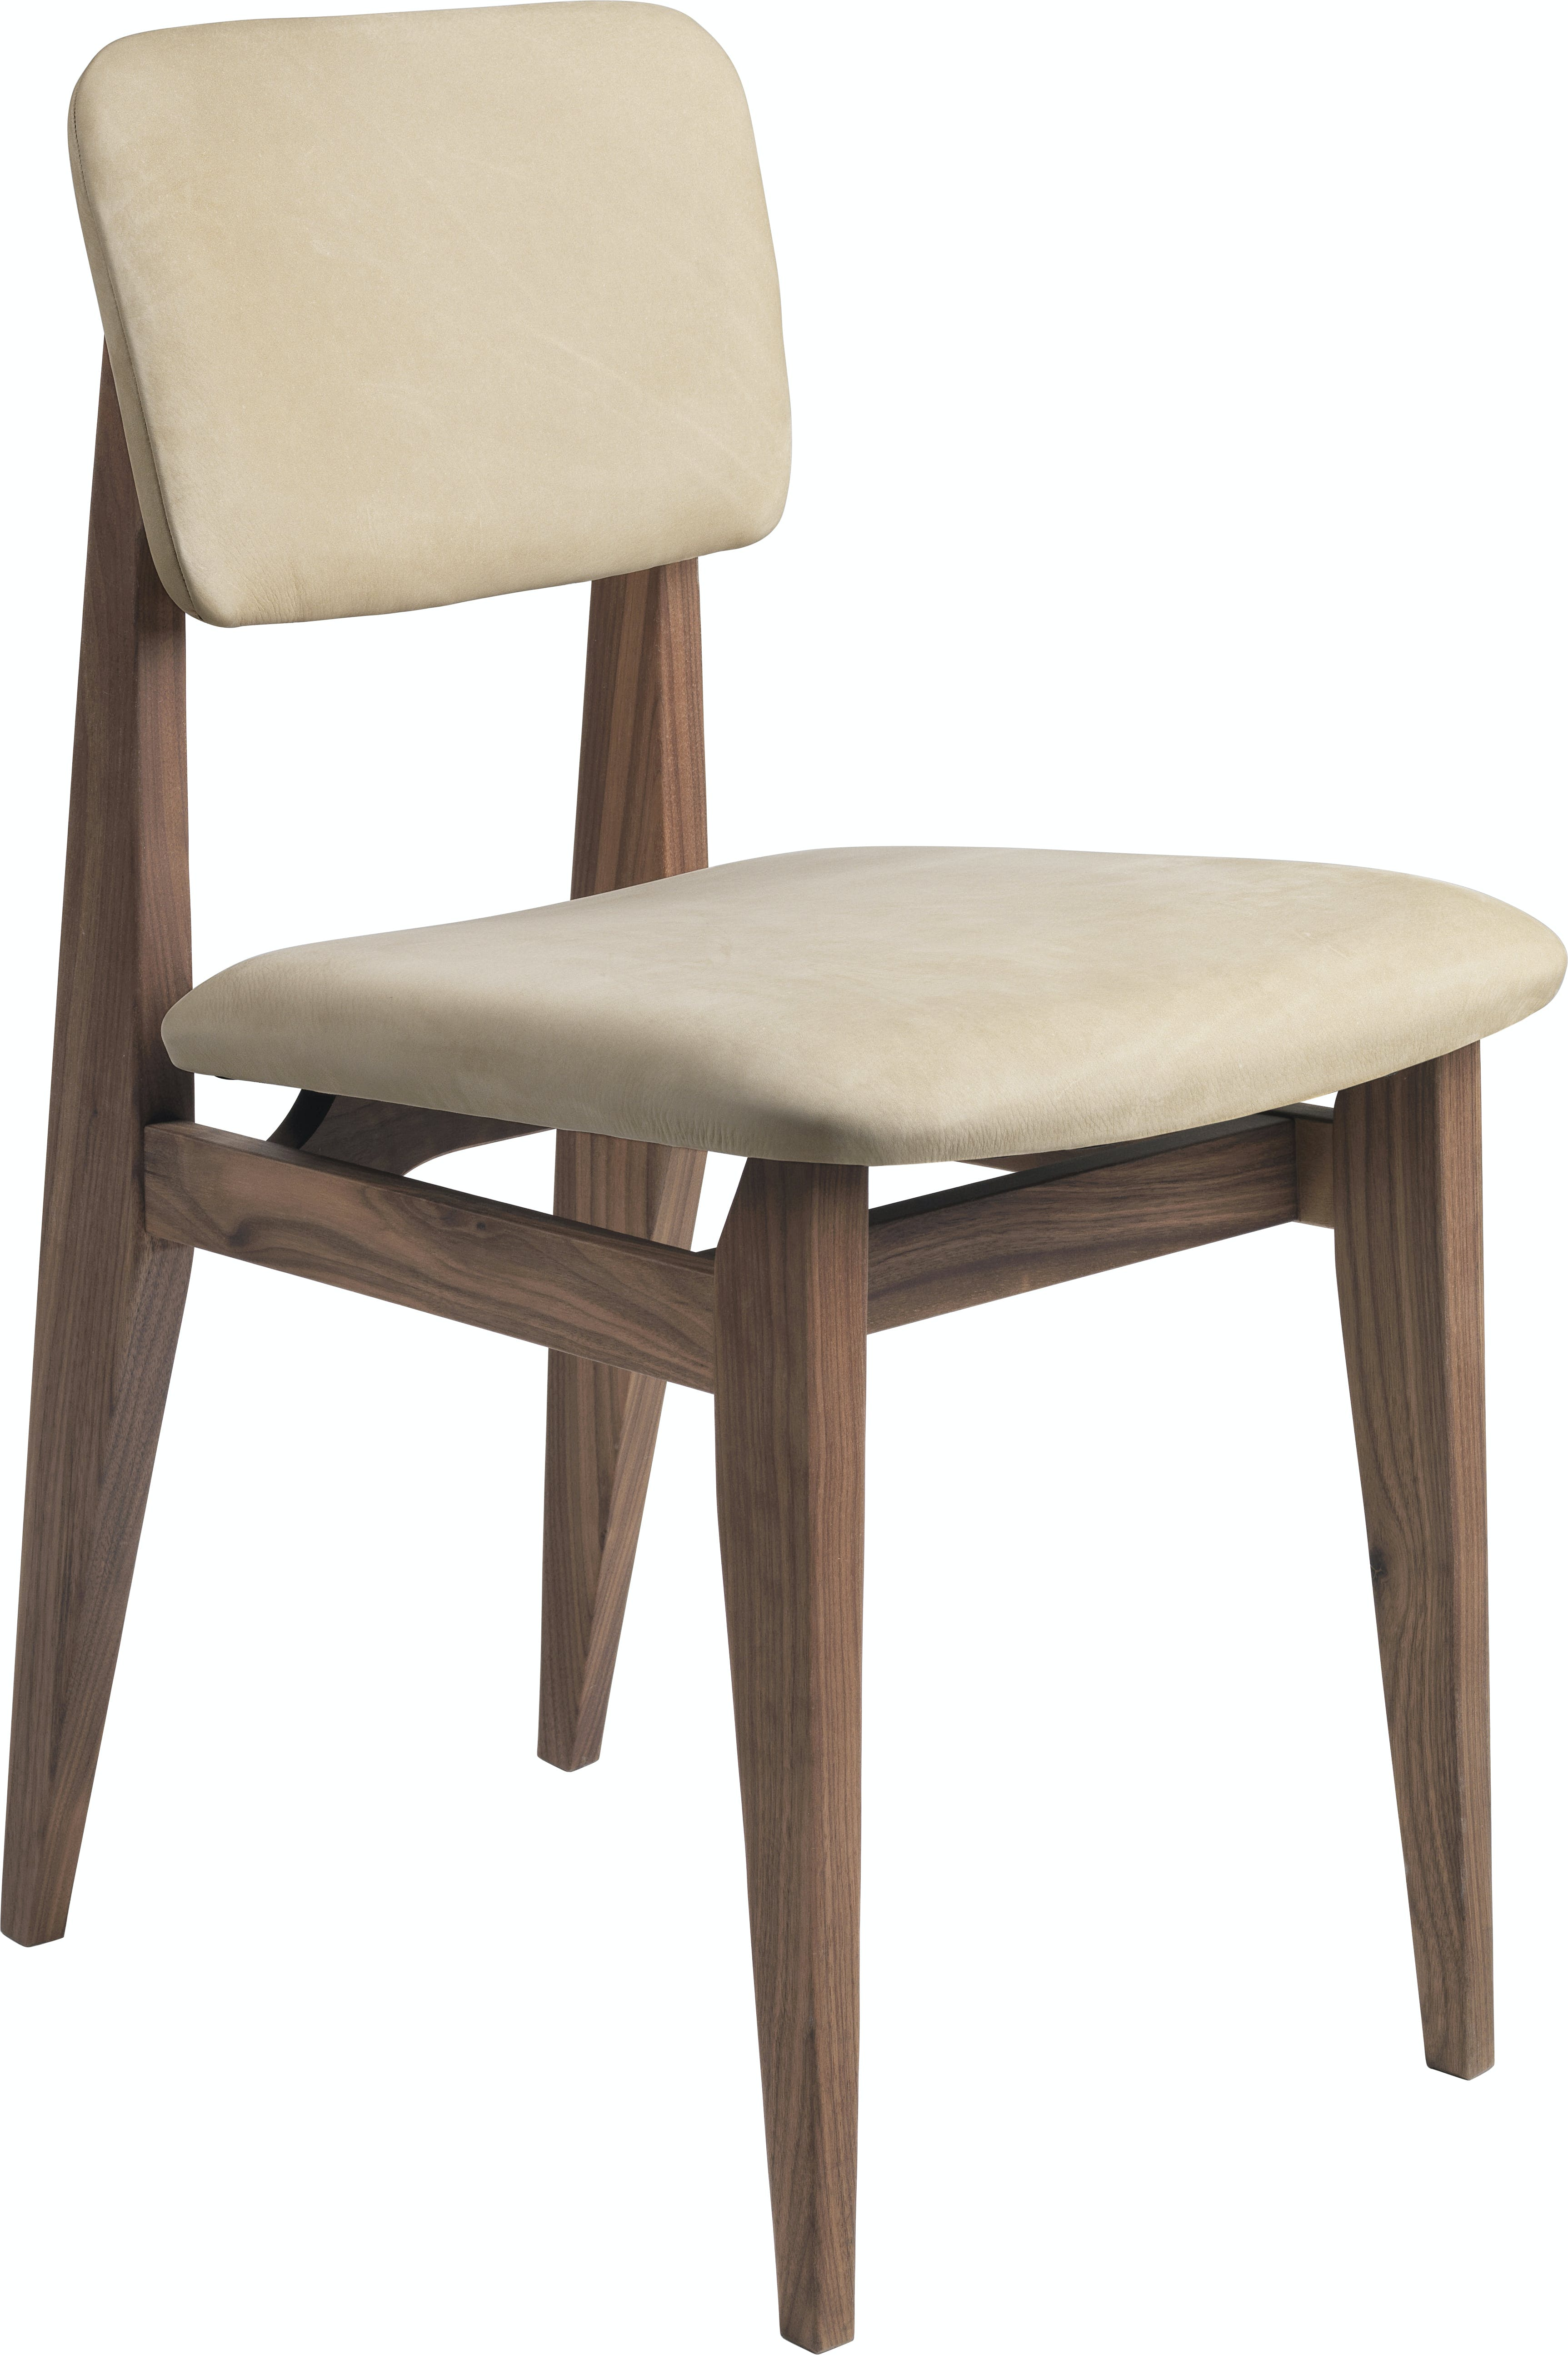 C Chair Dining Chair Wood Fully Upholstered American Walnut Gubi Chamois 1726 F3 Q